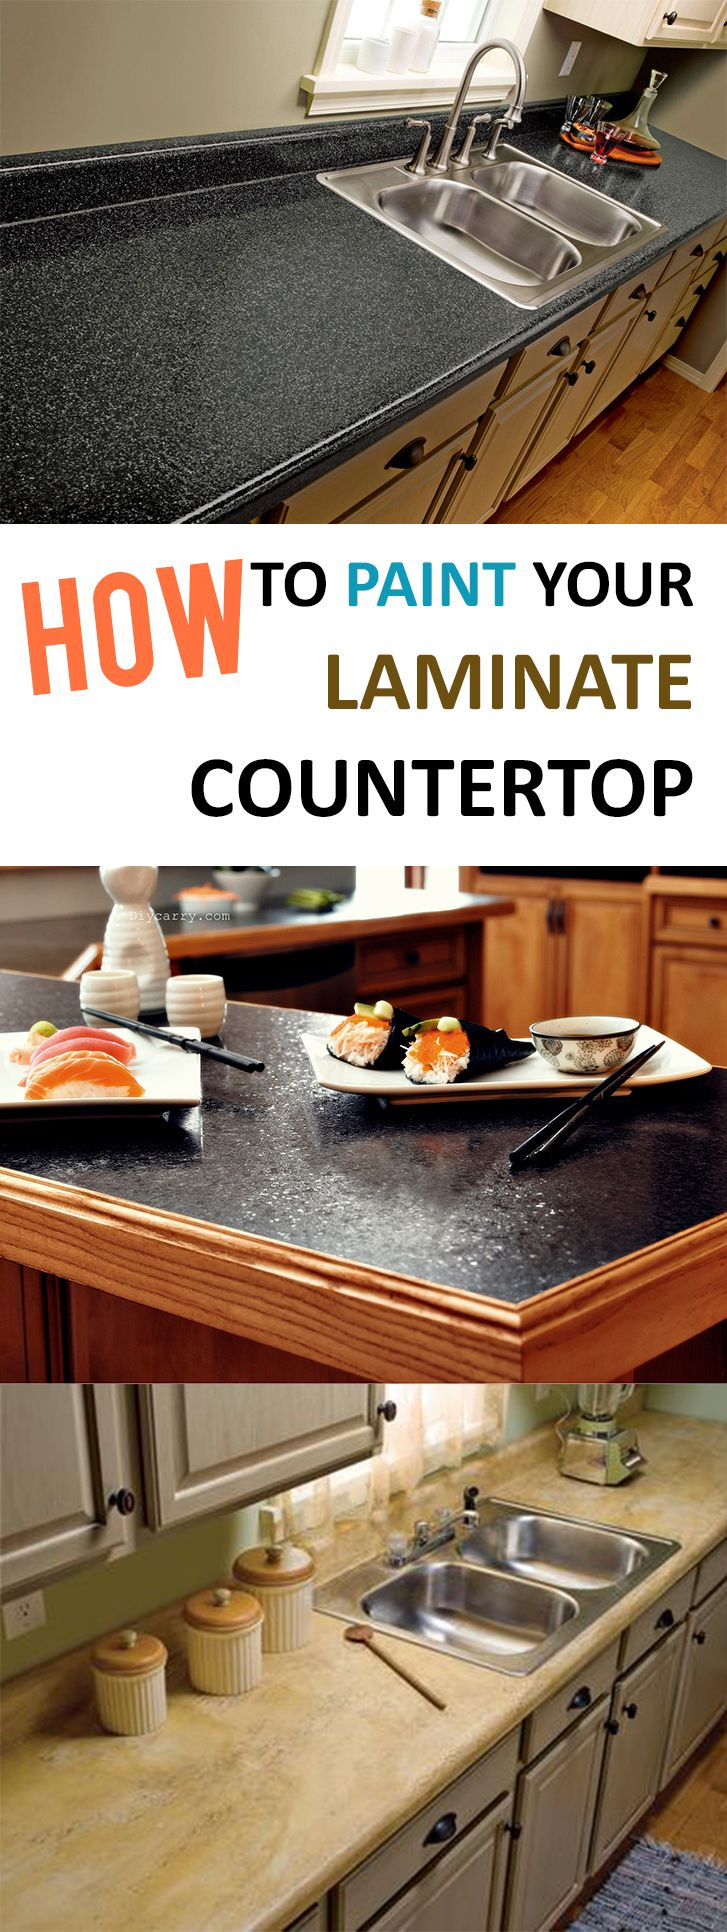 how to paint your laminate countertop | laminate countertop